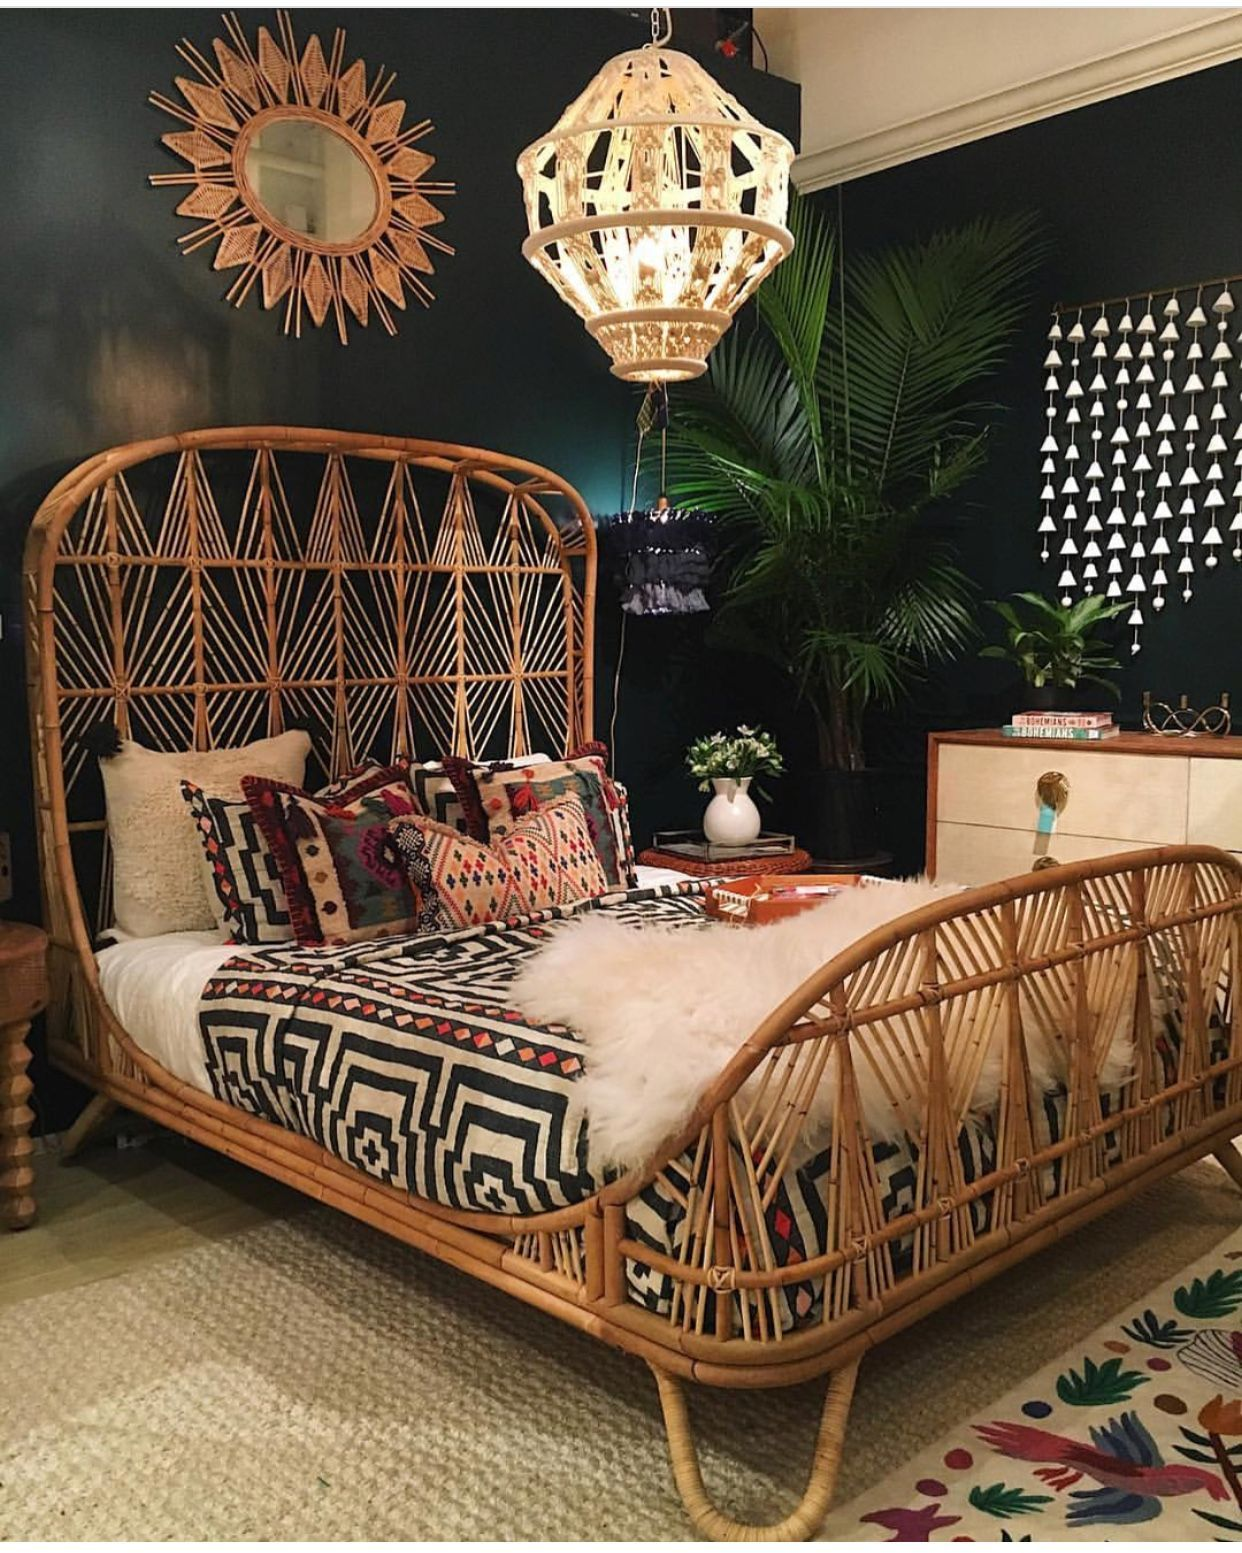 Boho | Prints & Artist Designed Goods Inspired by Life's ... on Modern Boho Bed Frame  id=60805